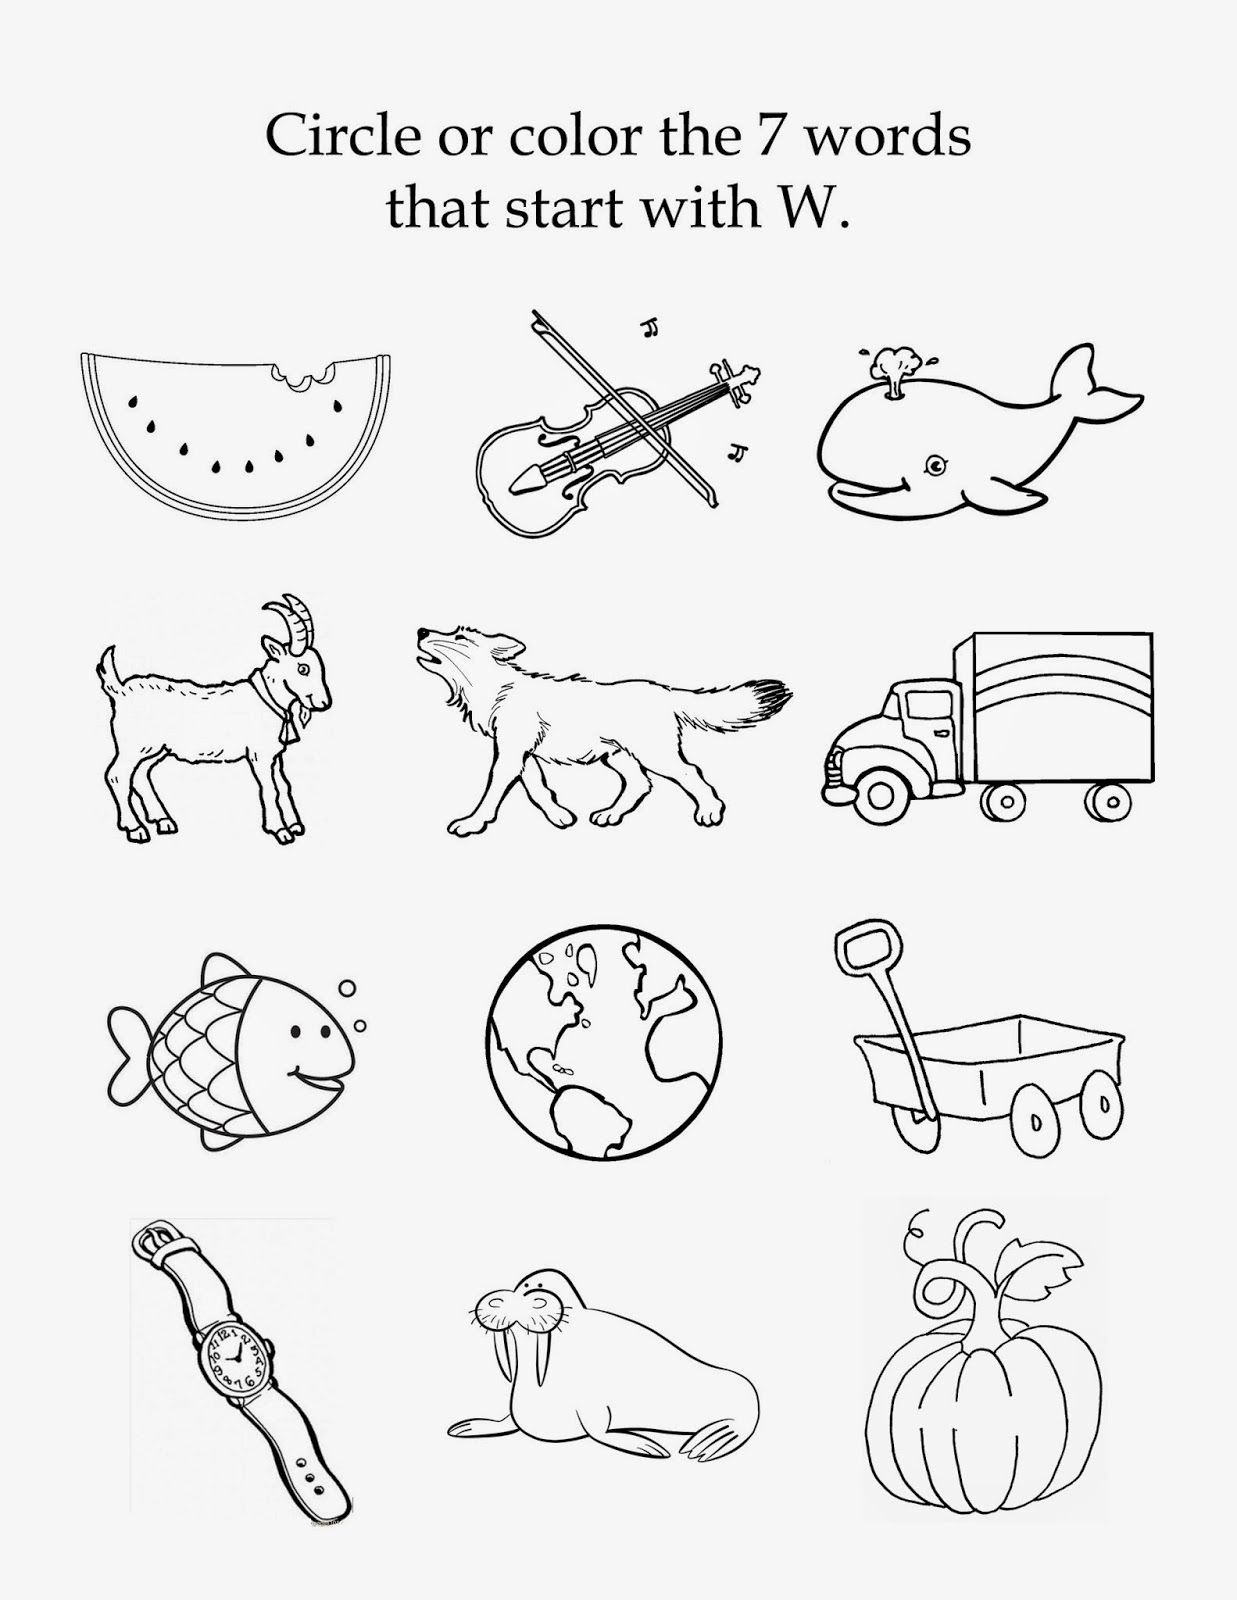 Letter W Worksheets for Preschoolers the Letter W